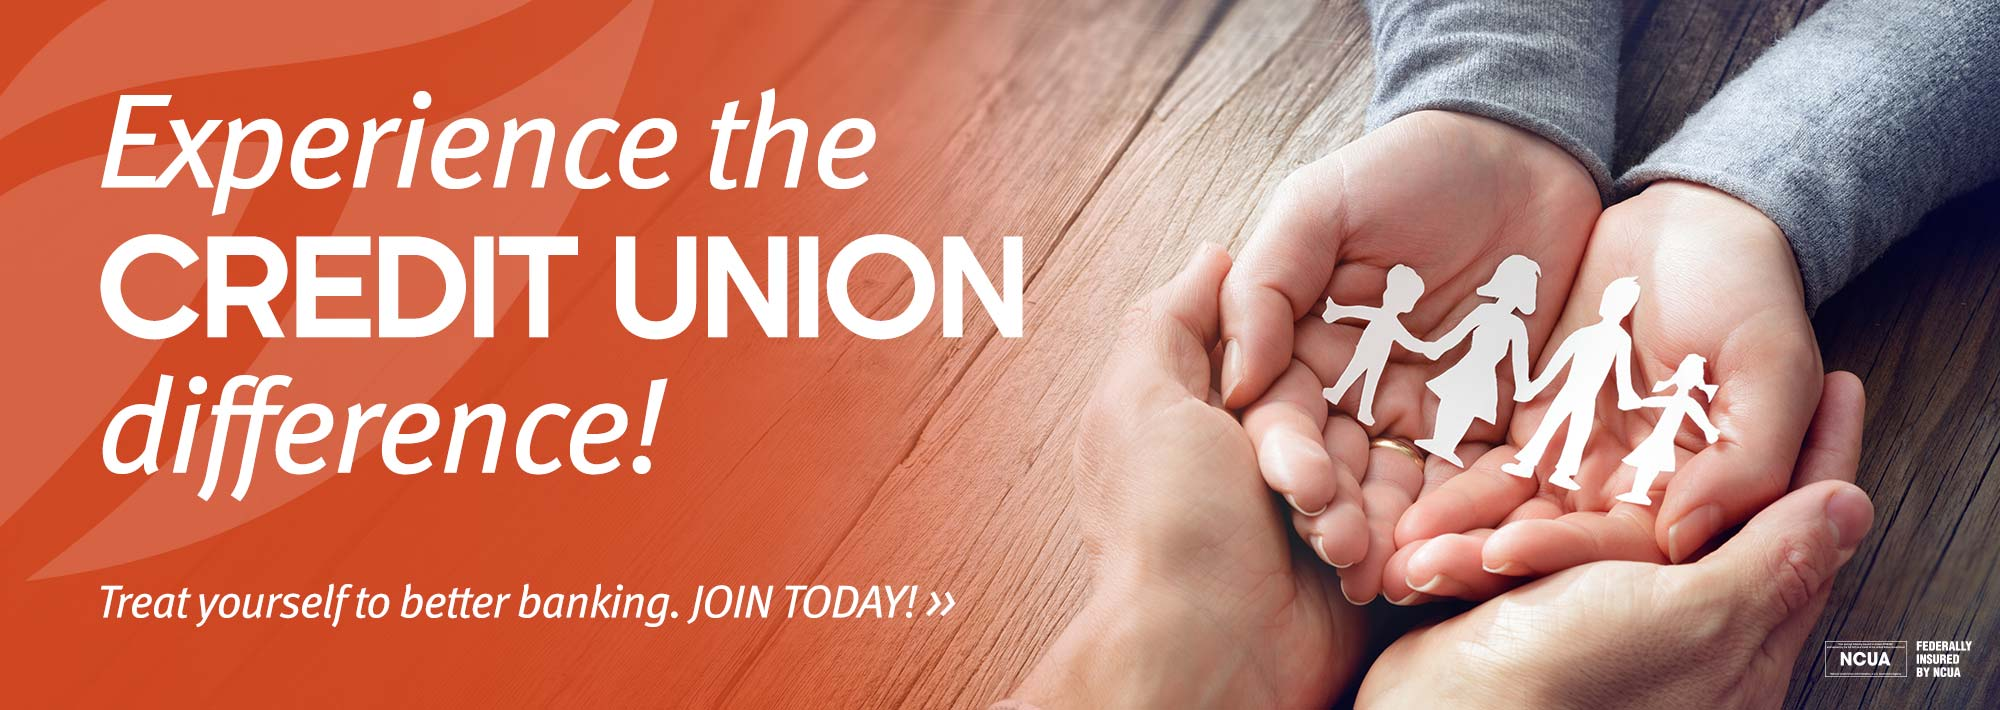 Experience the Credit Union Difference! Treat yourself to better banking.